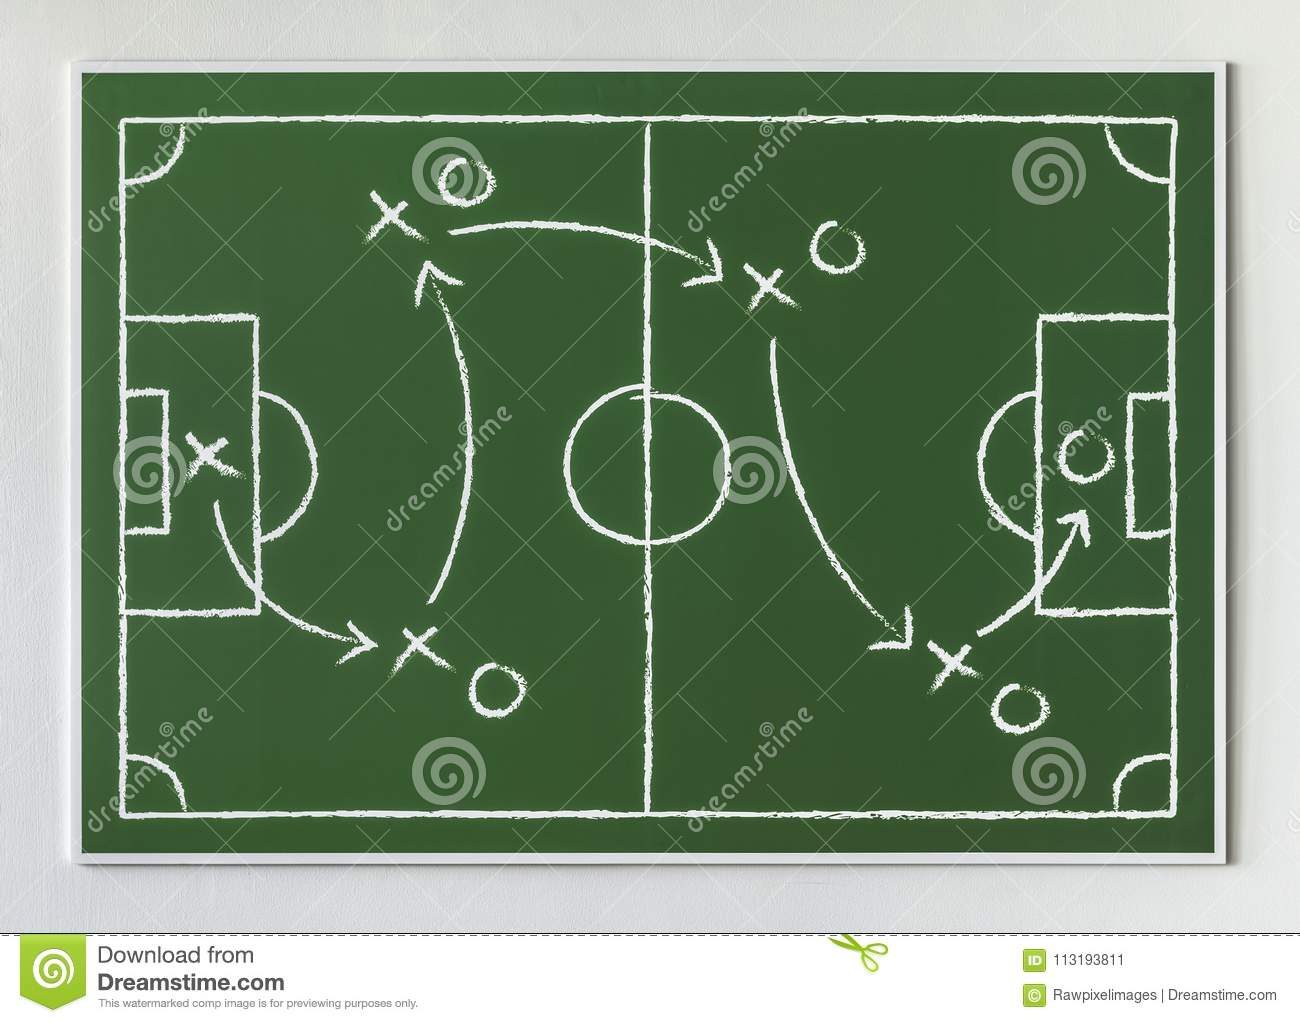 155678dee Game plan for soccer player to shoot goals. More similar stock illustrations